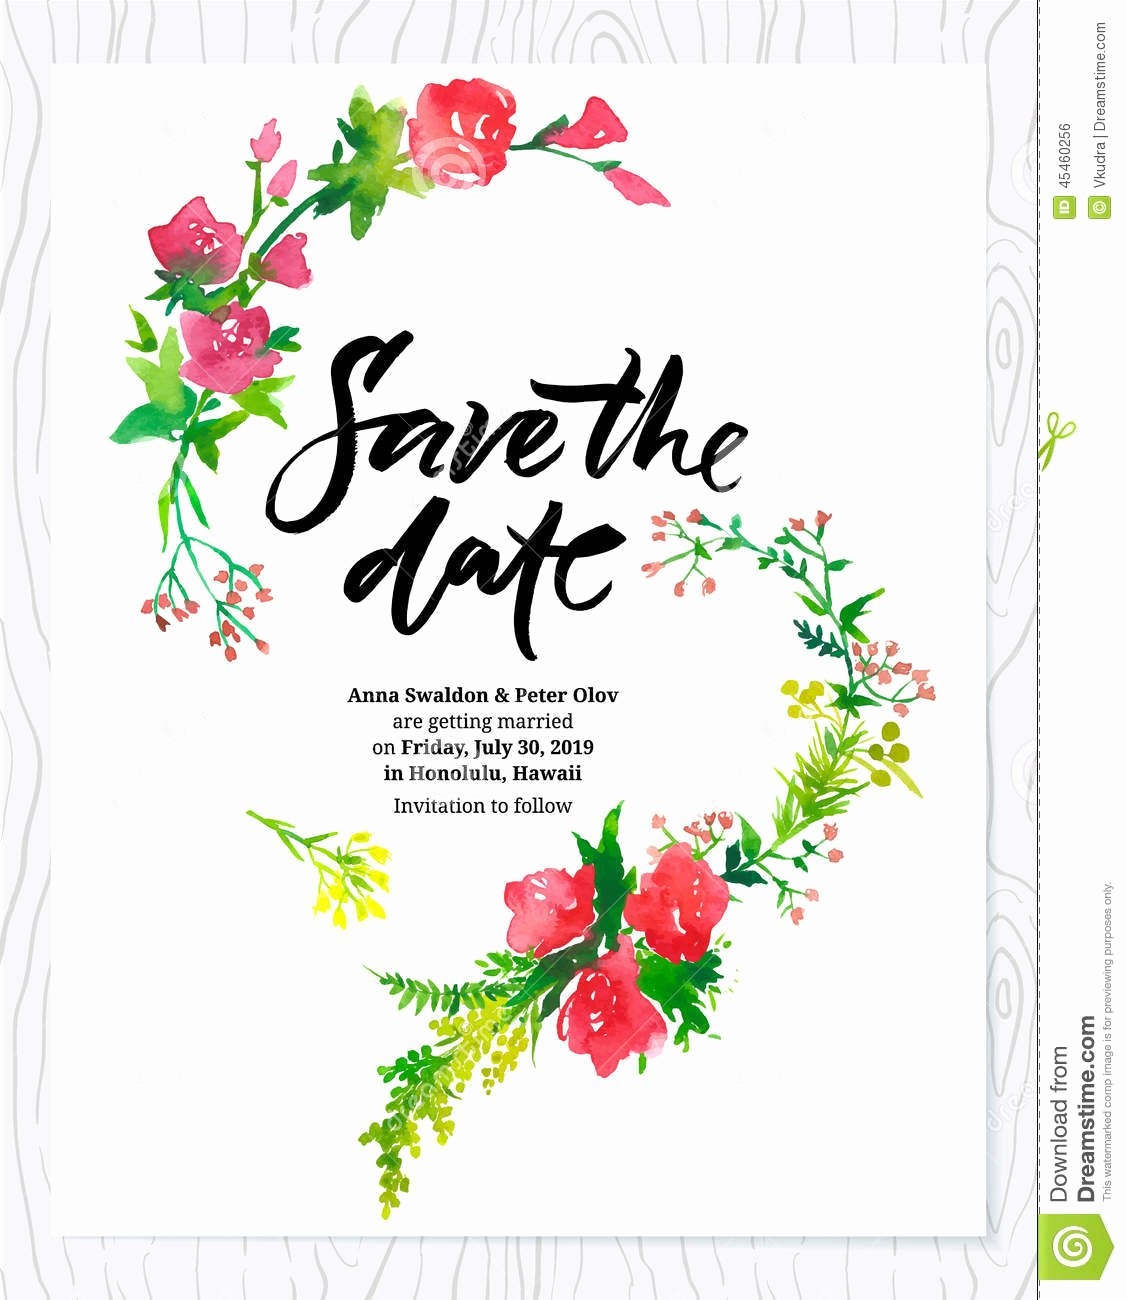 Flower Invitation Template Fresh Wedding Floral Watercolor Card Save the Date Stock Vector